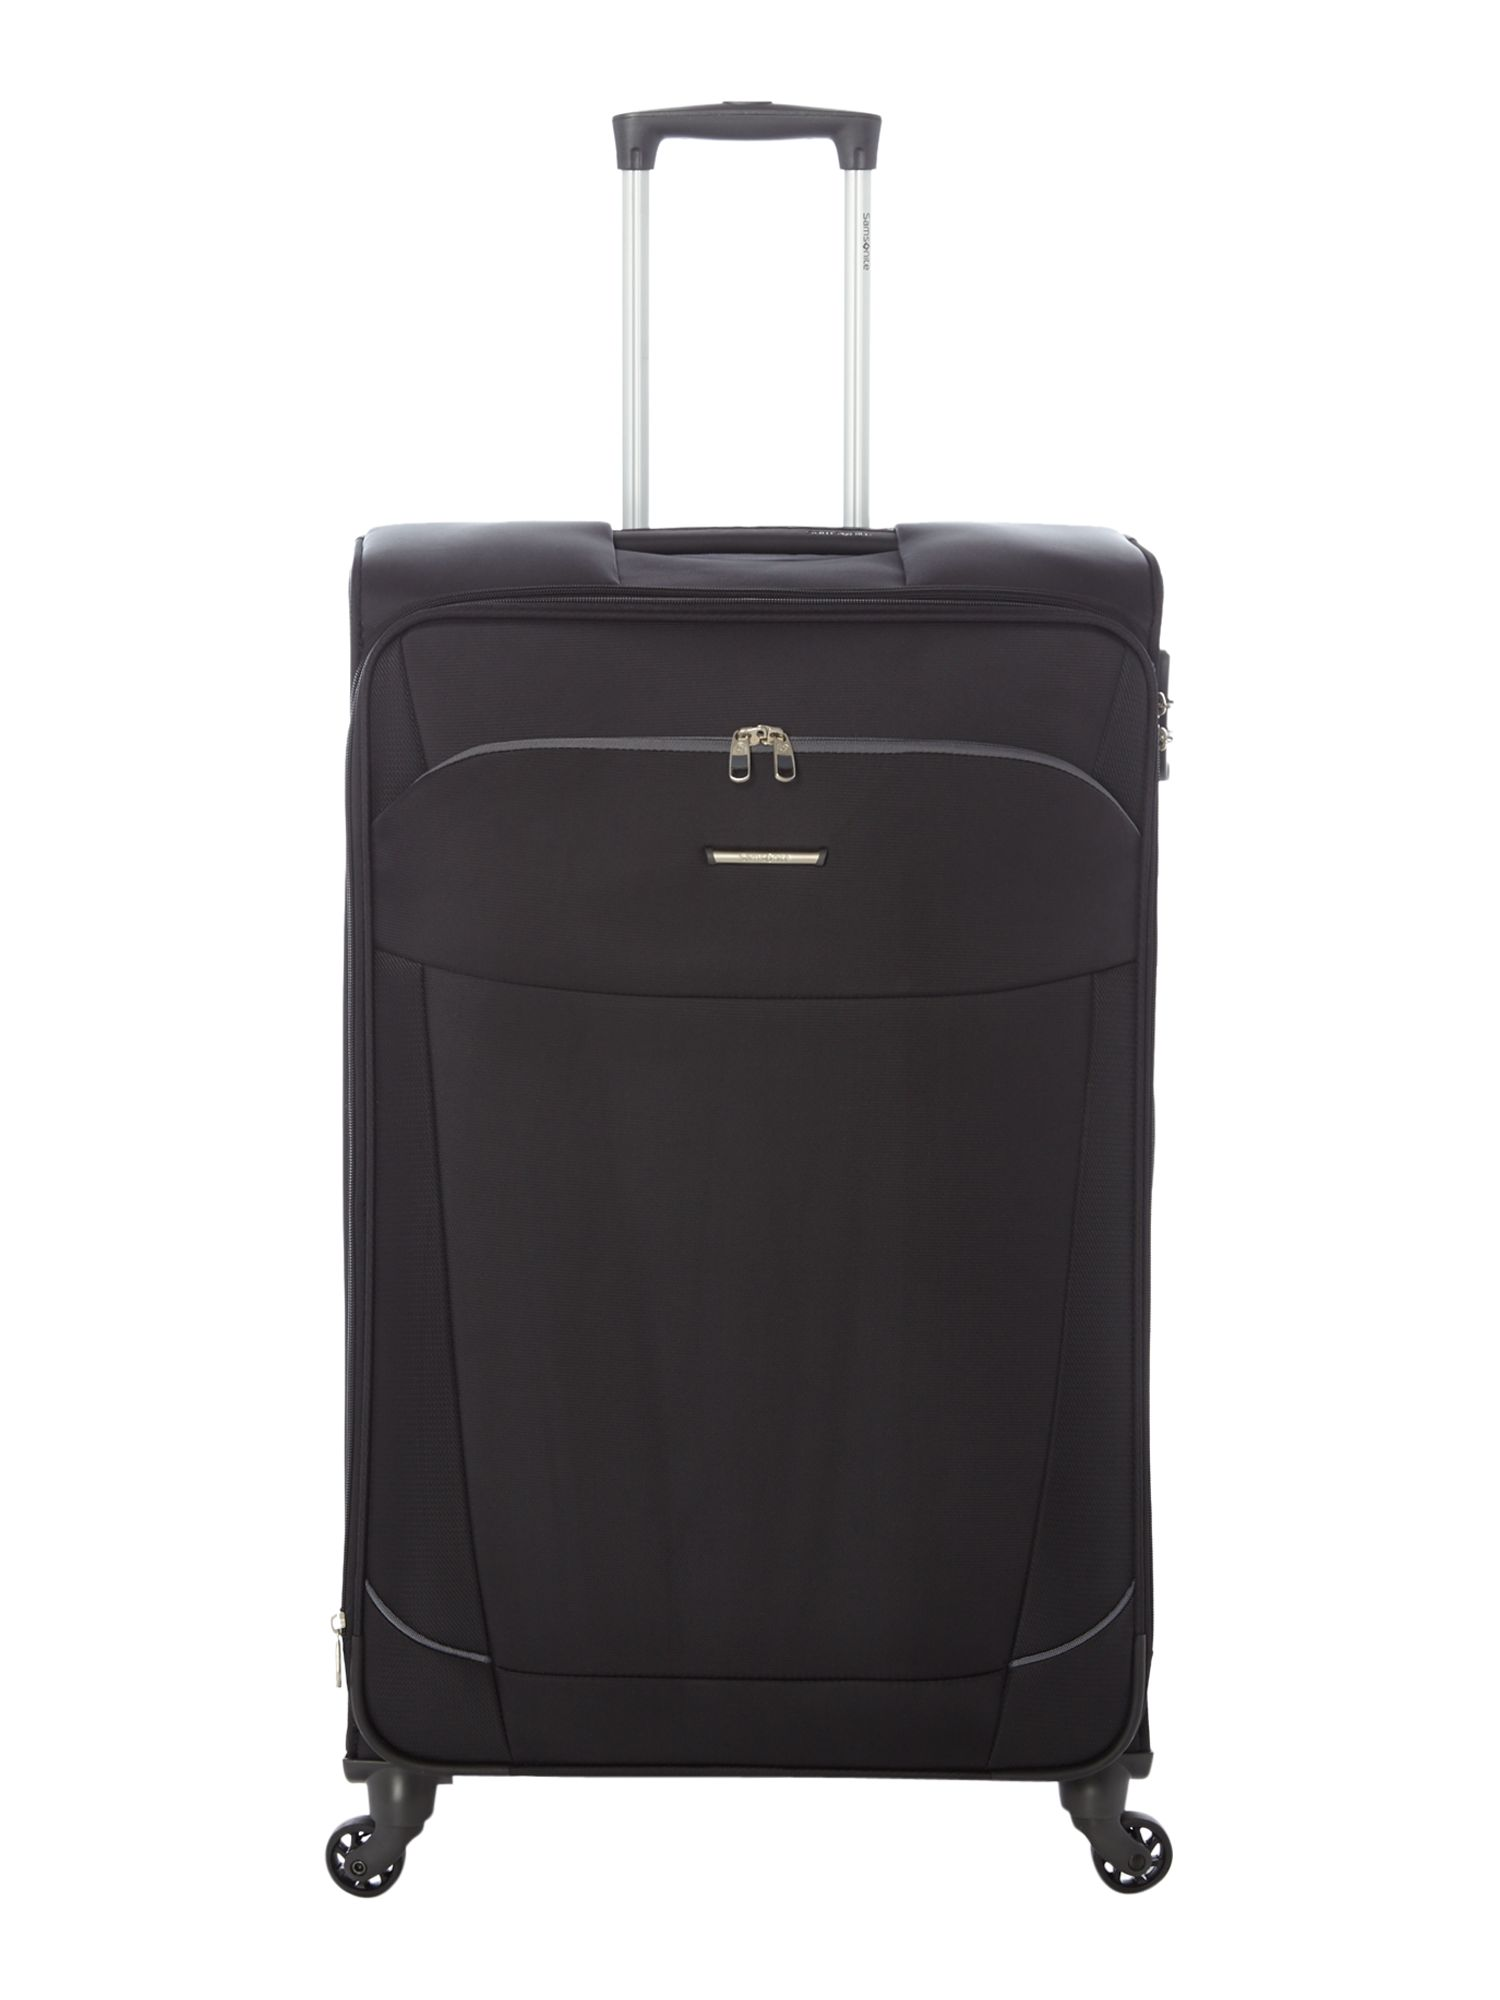 Samsonite Artos Black Large Expandable Spinner Suitcase, Black